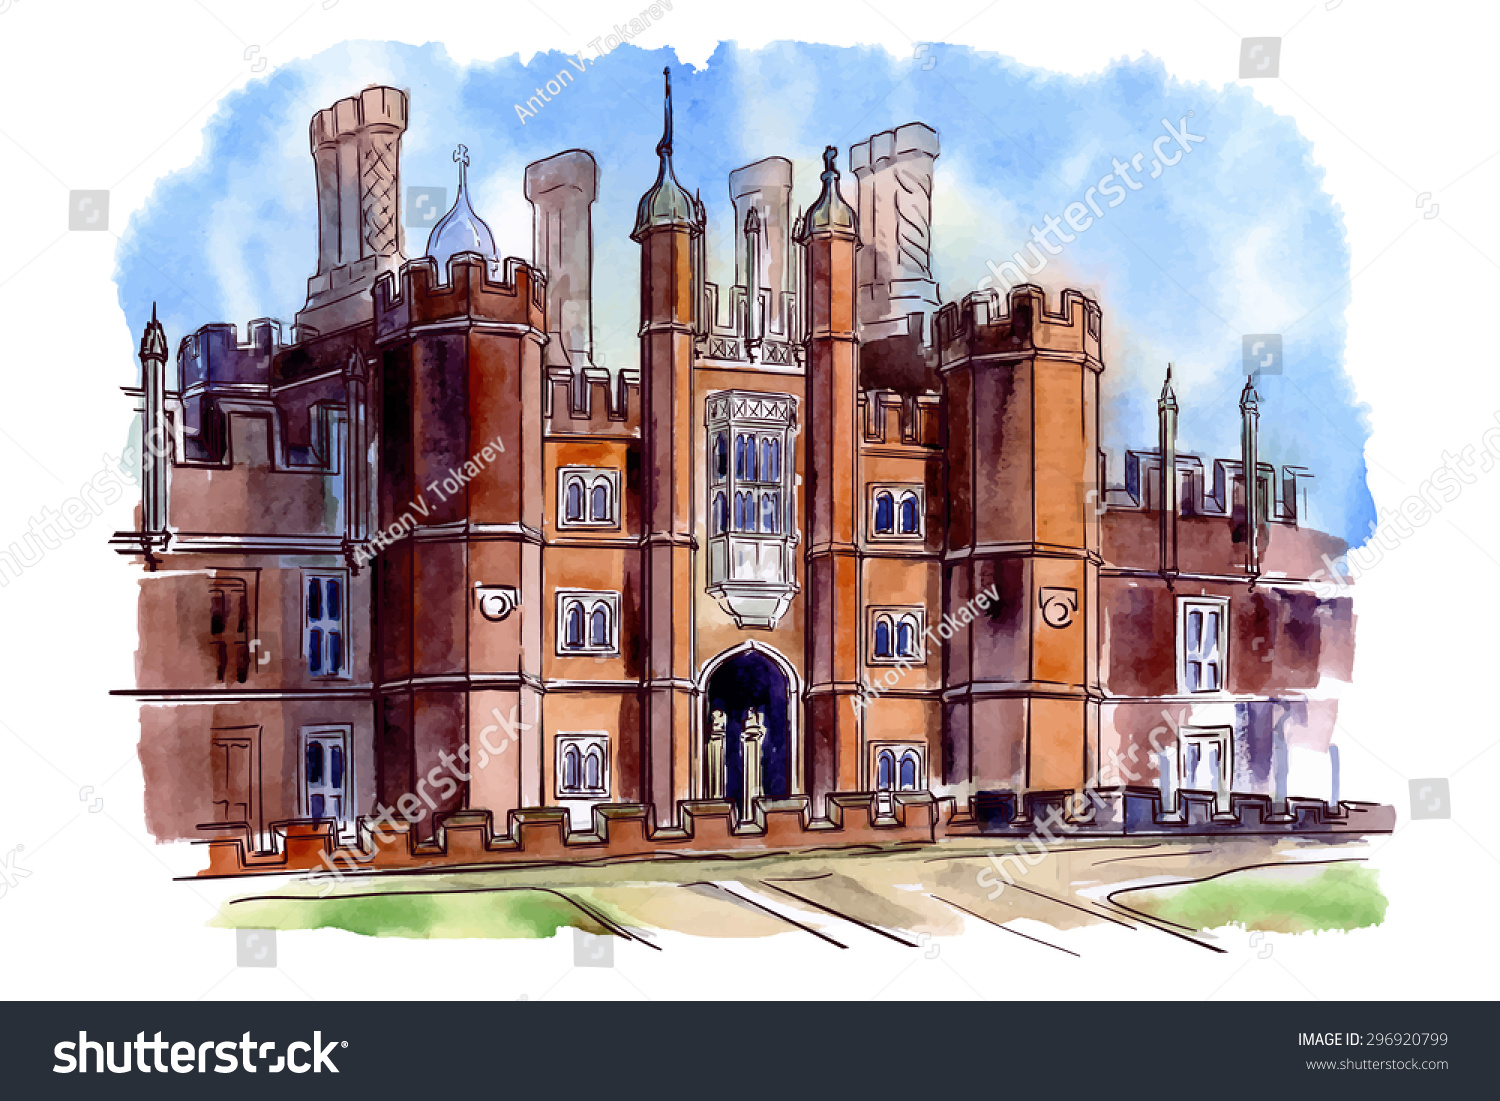 History british architectural styles tudor architecture for Architects hampton